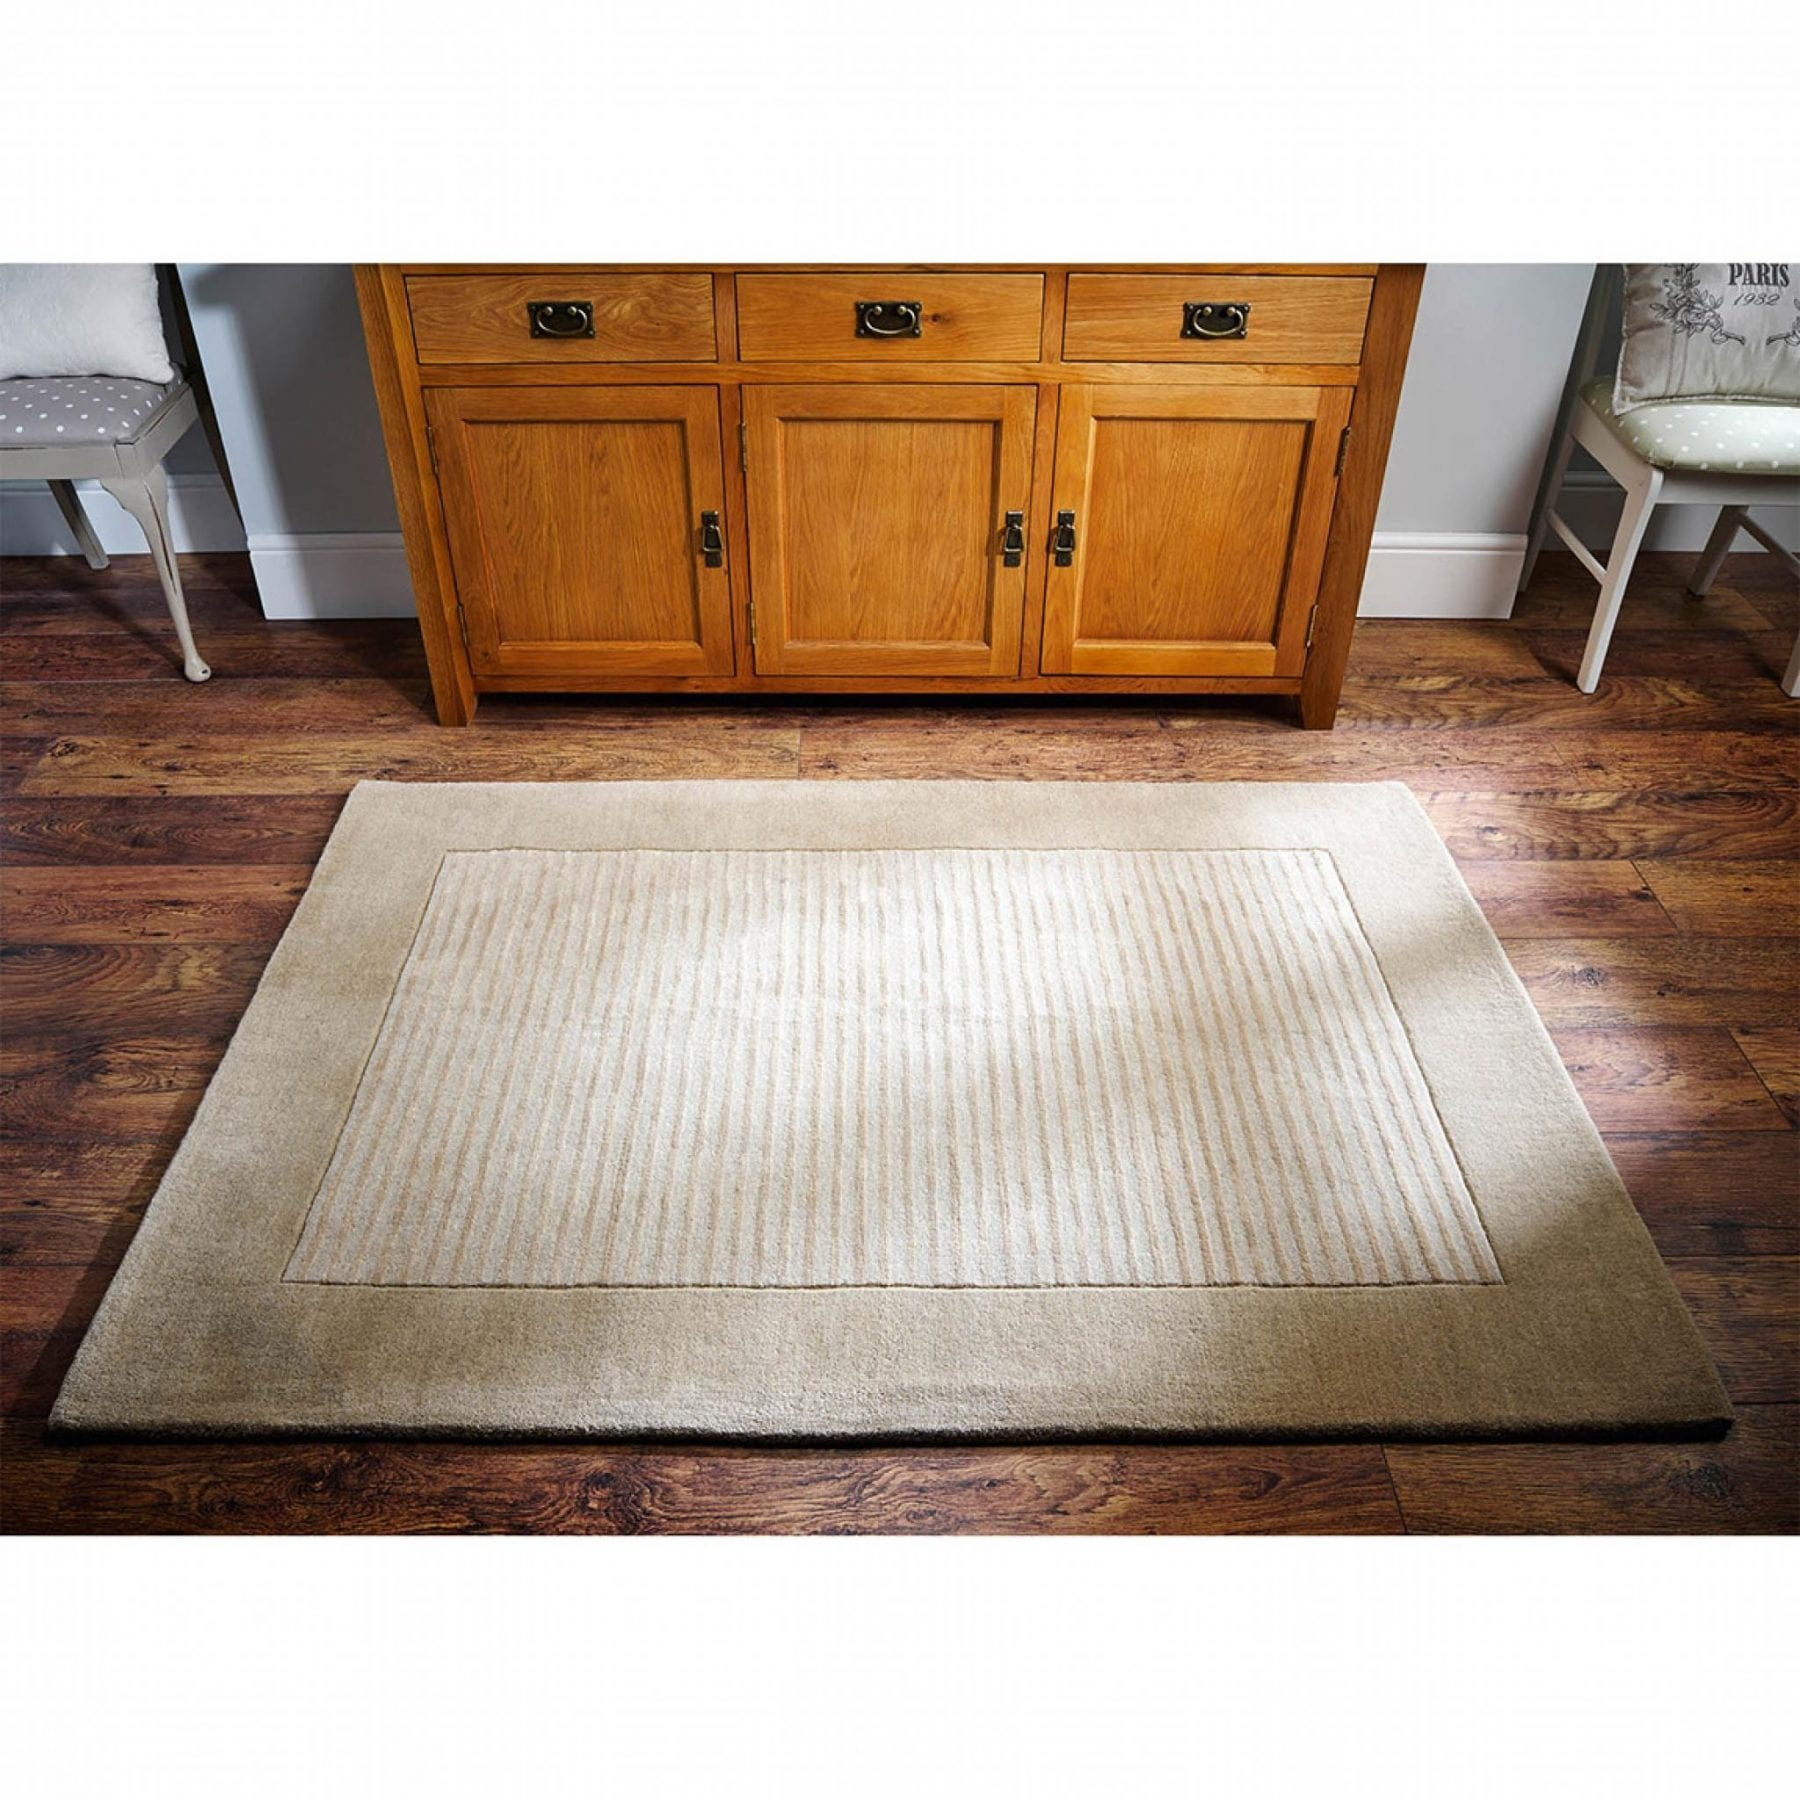 Henley Beige Striped Rug   Luxurious Contemporary Wool Rug